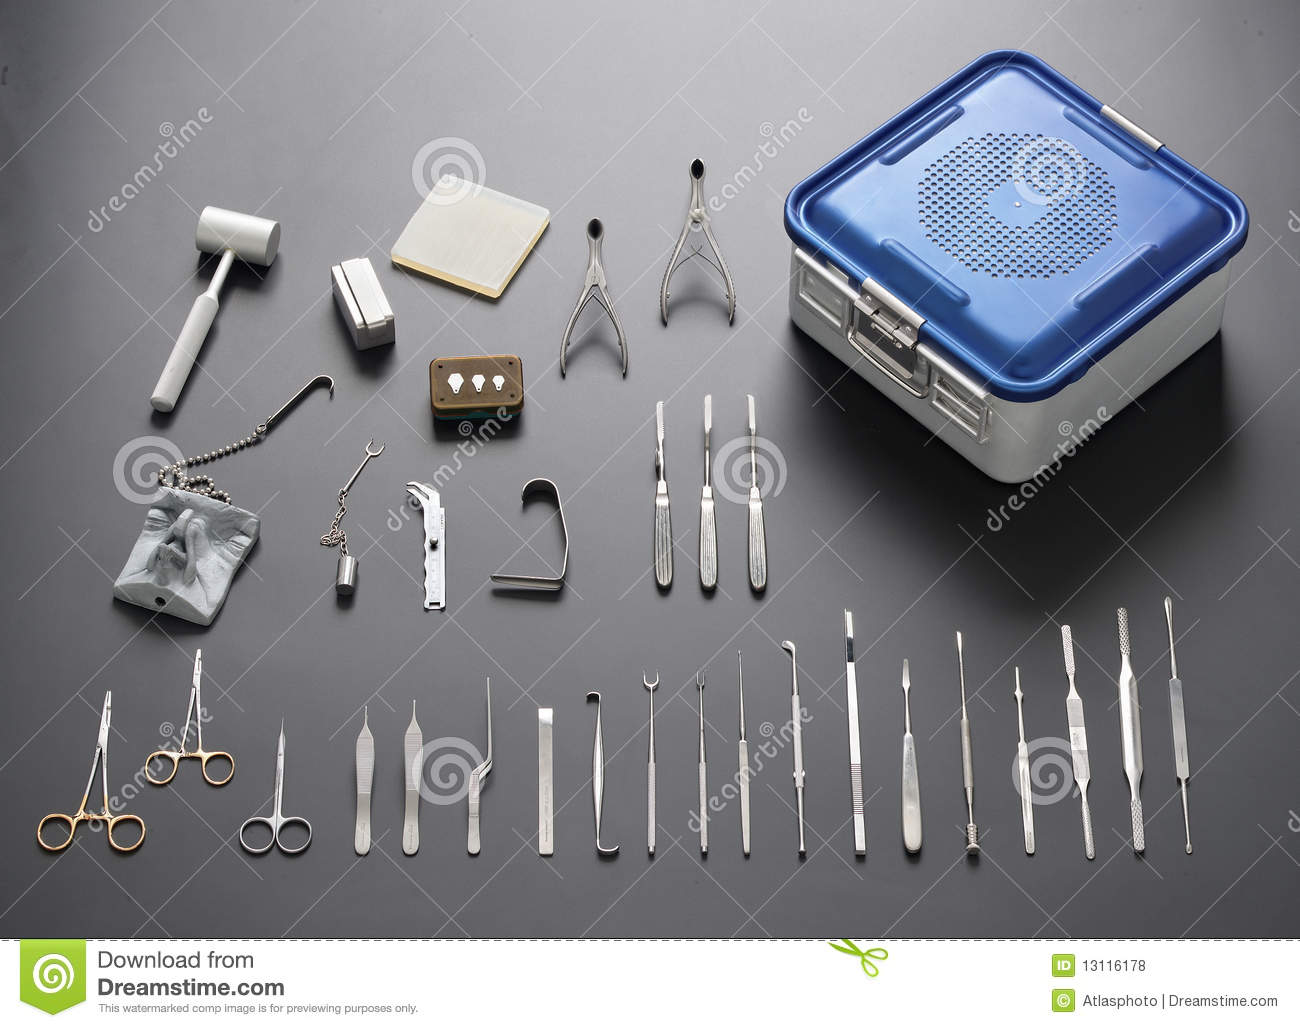 Medical And Surgical Stainless Steel Tool Set Royalty Free